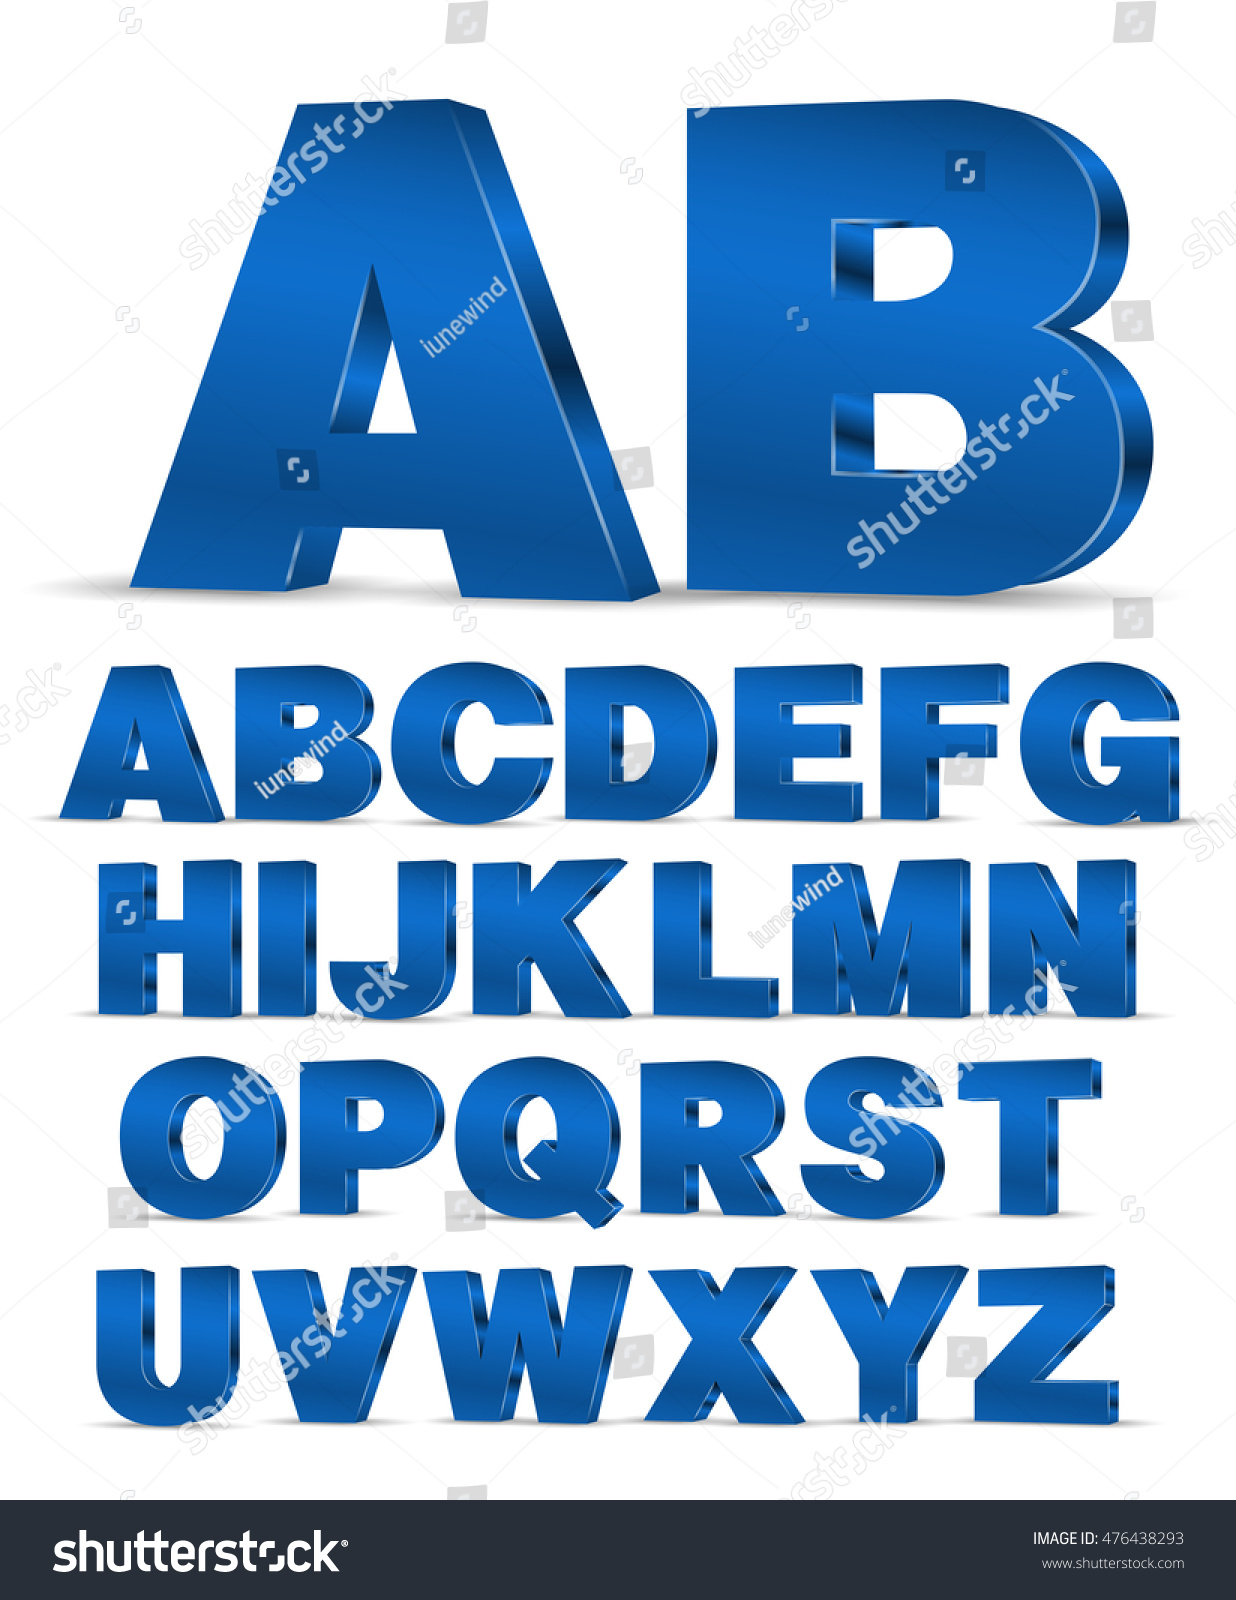 Blue colored 3D style decor poster typeface vector font. Set of latin capital letters and numbers #476438293